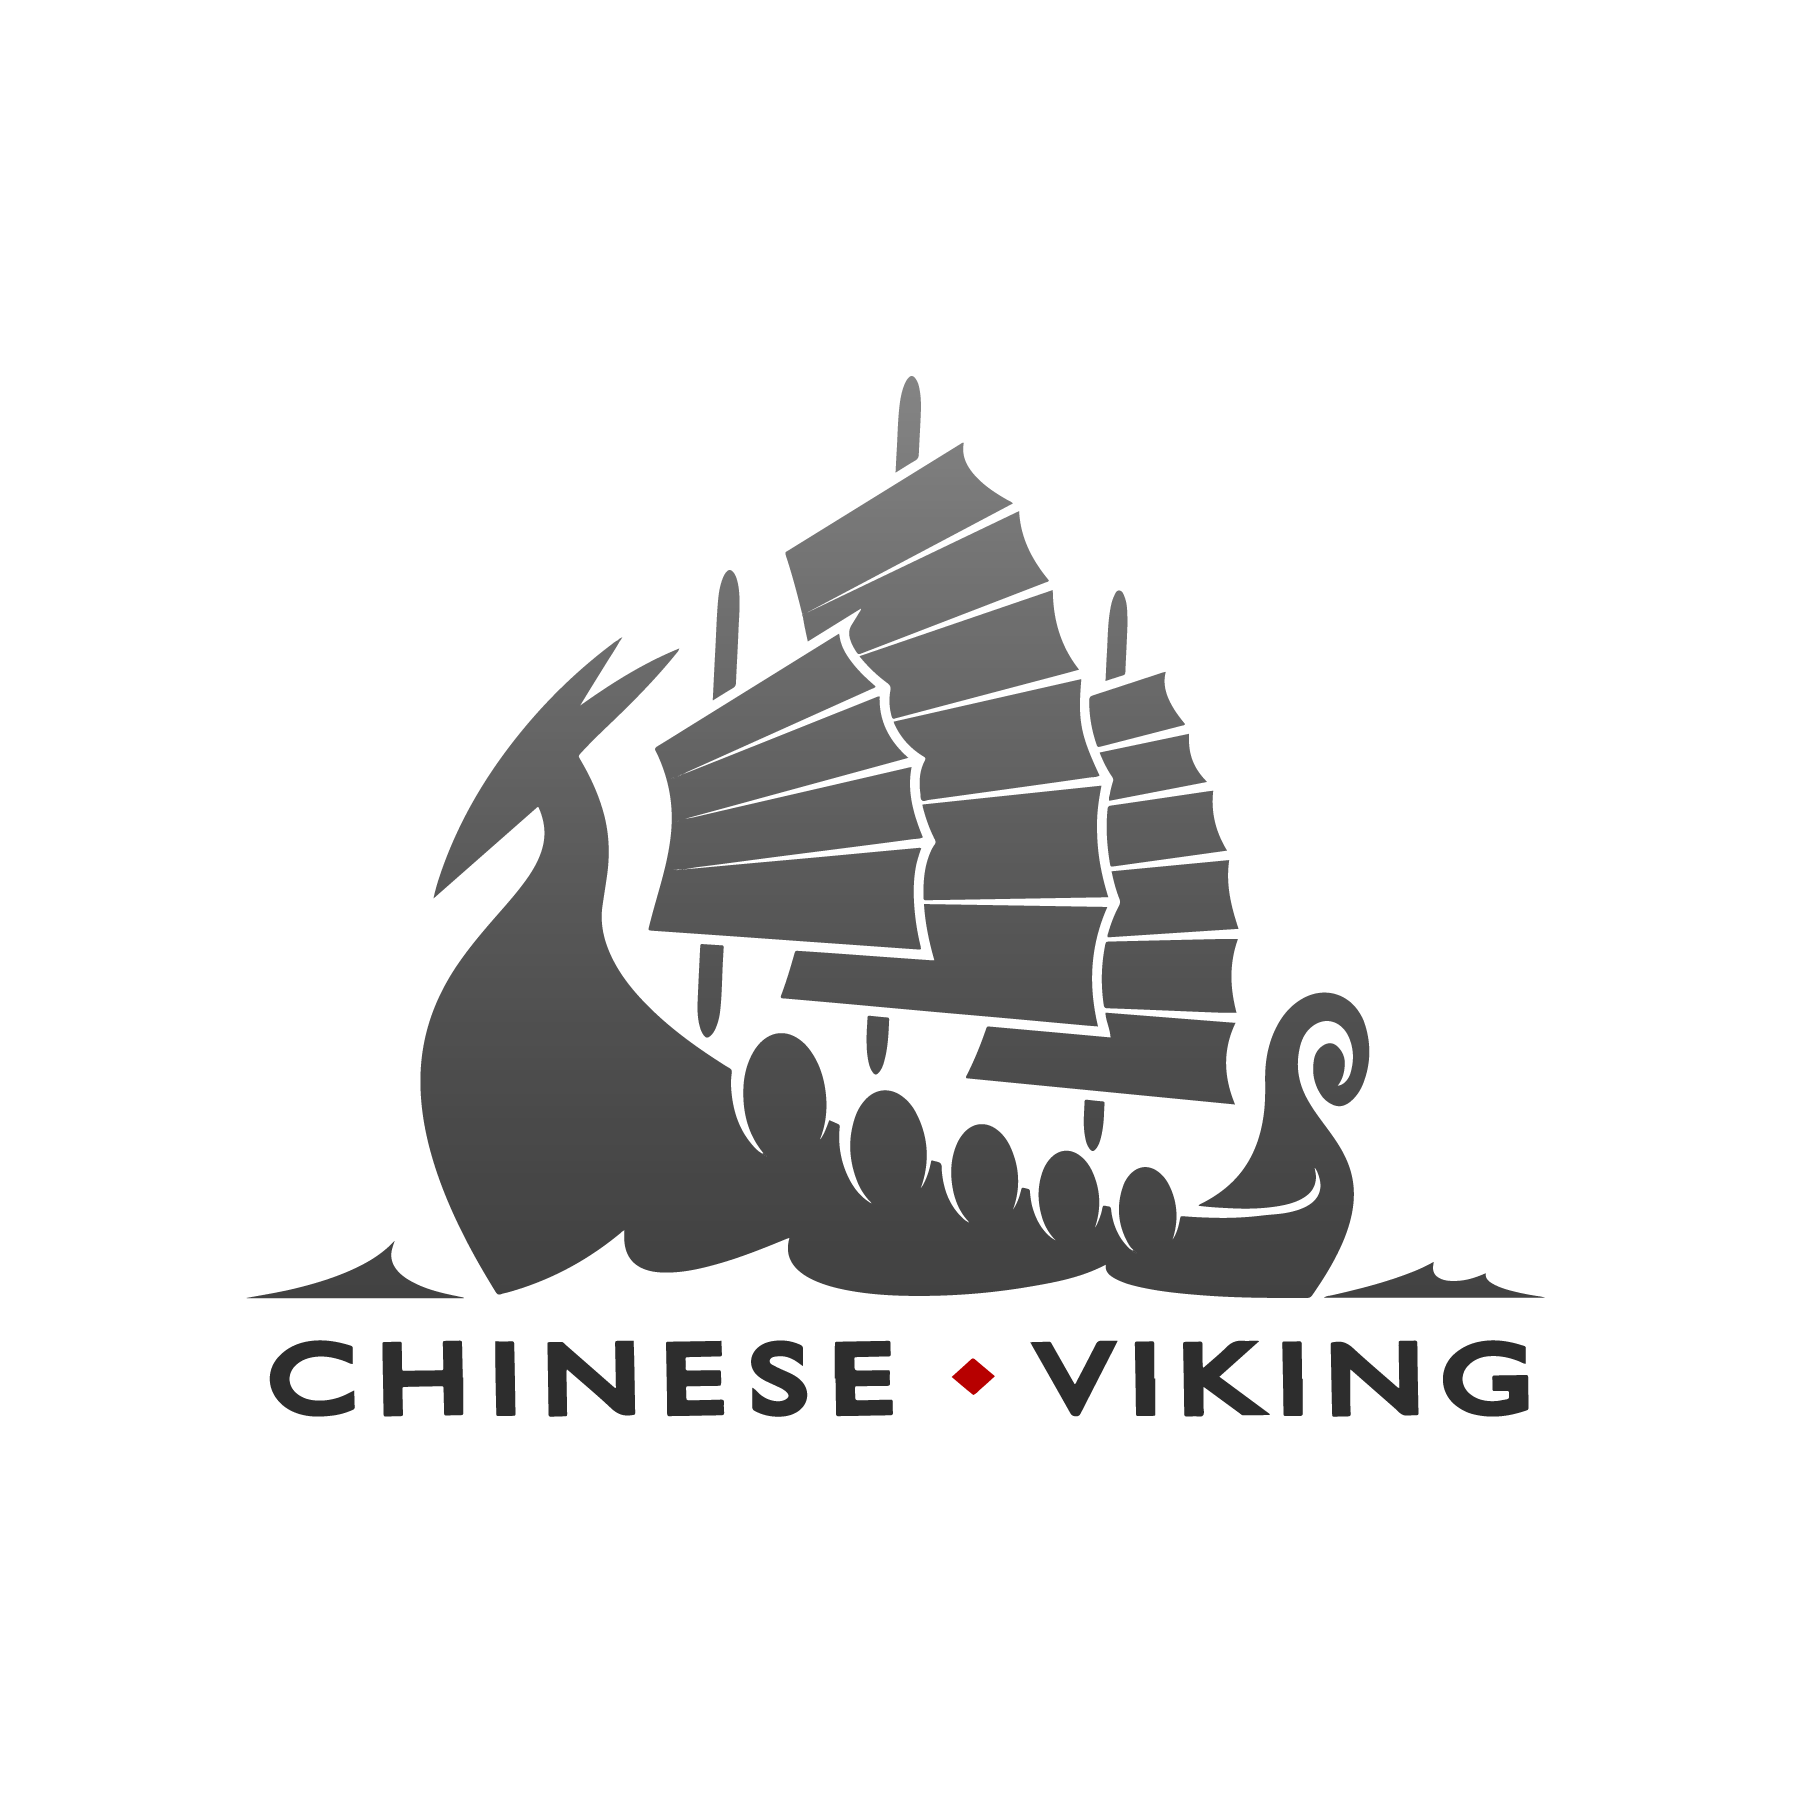 CHINESE VIKING